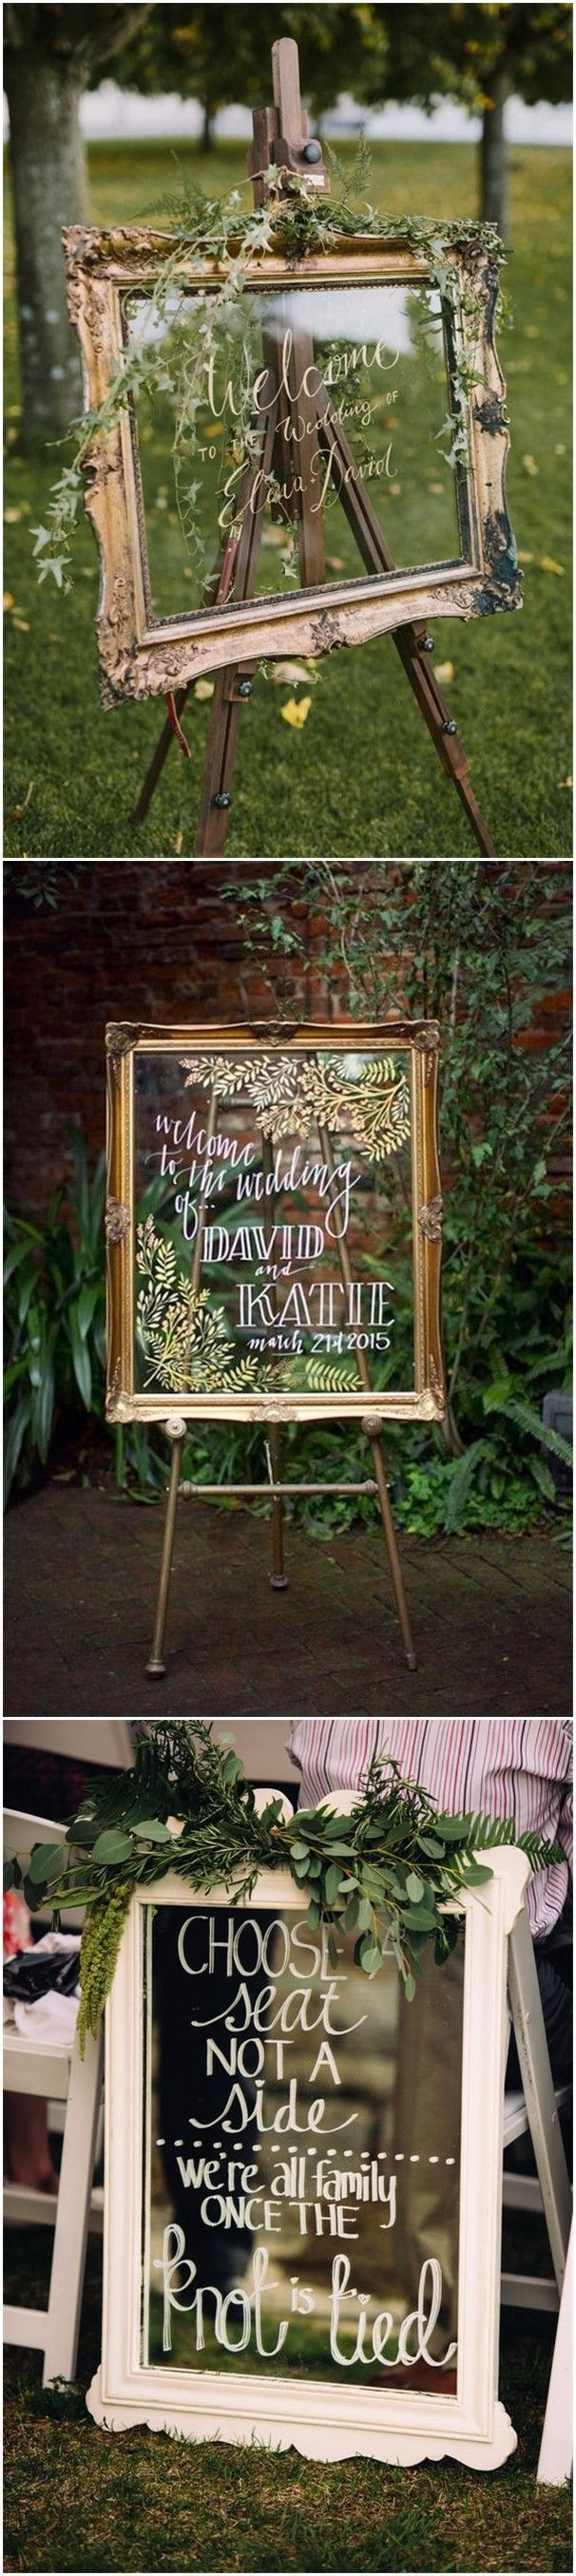 Wedding Decorations » 27 Vintage Mirror Wedding Sign Decoration Ideas » ❤️ See more: http://www.weddinginclude.com/2017/07/mirror-wedding-sign-decoration-ideas/ #weddingdecoration